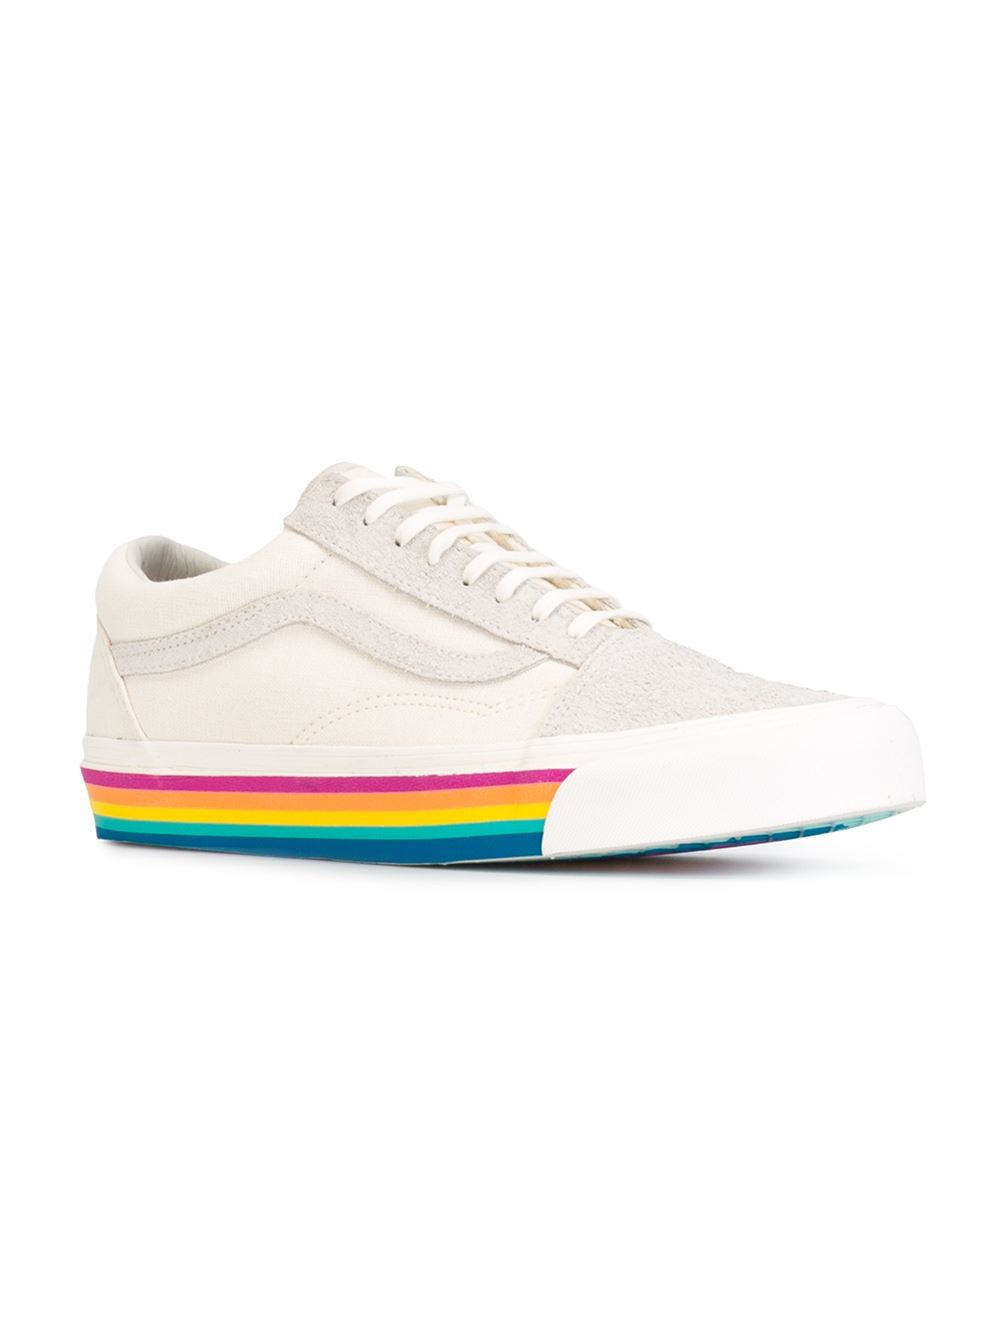 34e82757f608a7 Vans Rainbow Sole Sneakers in Natural - Lyst